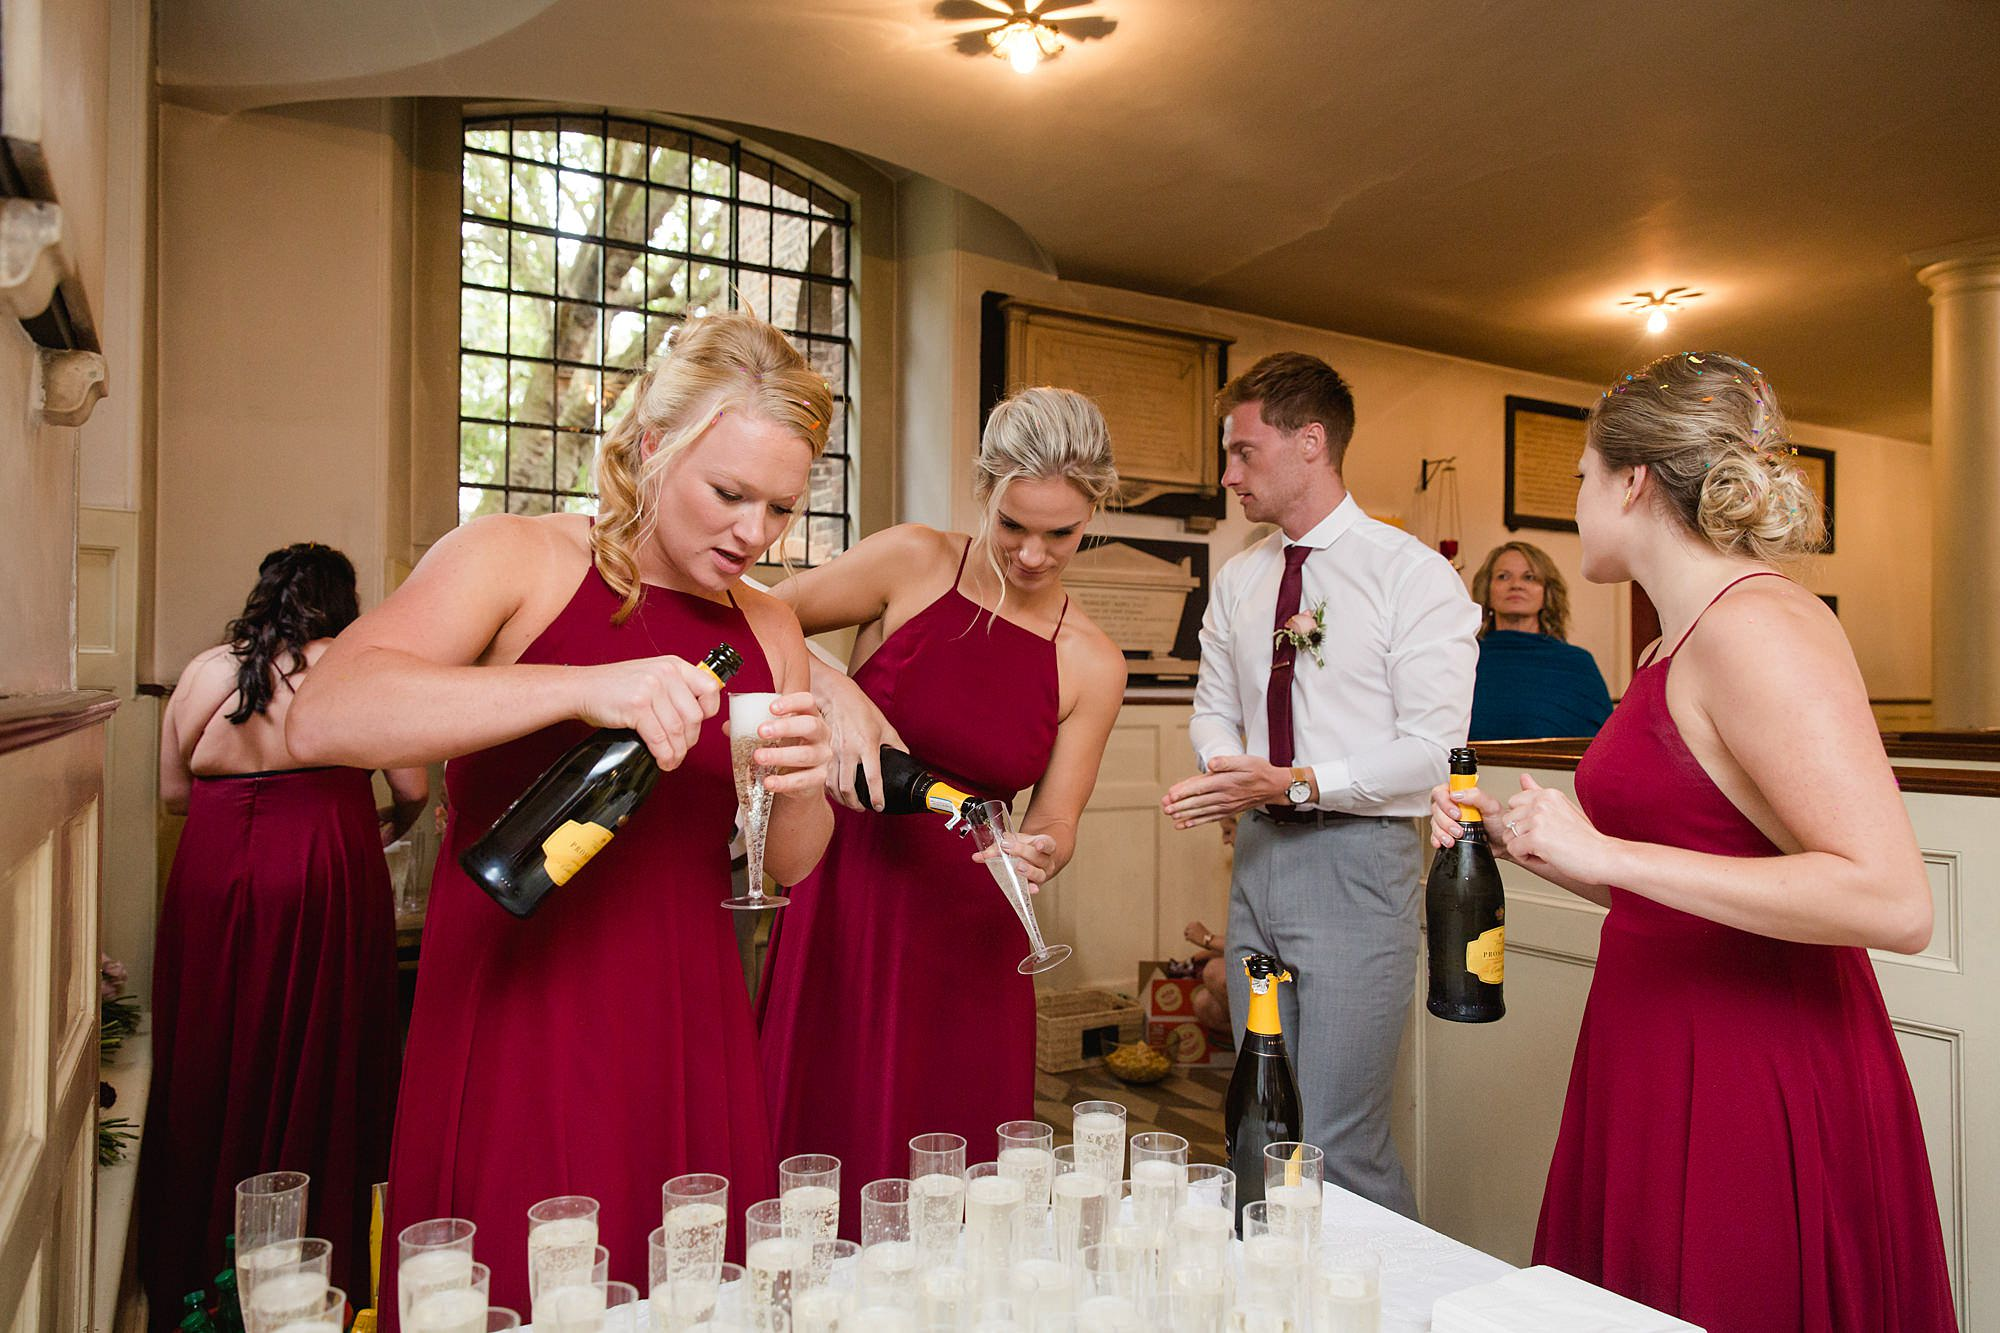 The Union Paddington wedding bridesmaids pour champagne for drinks